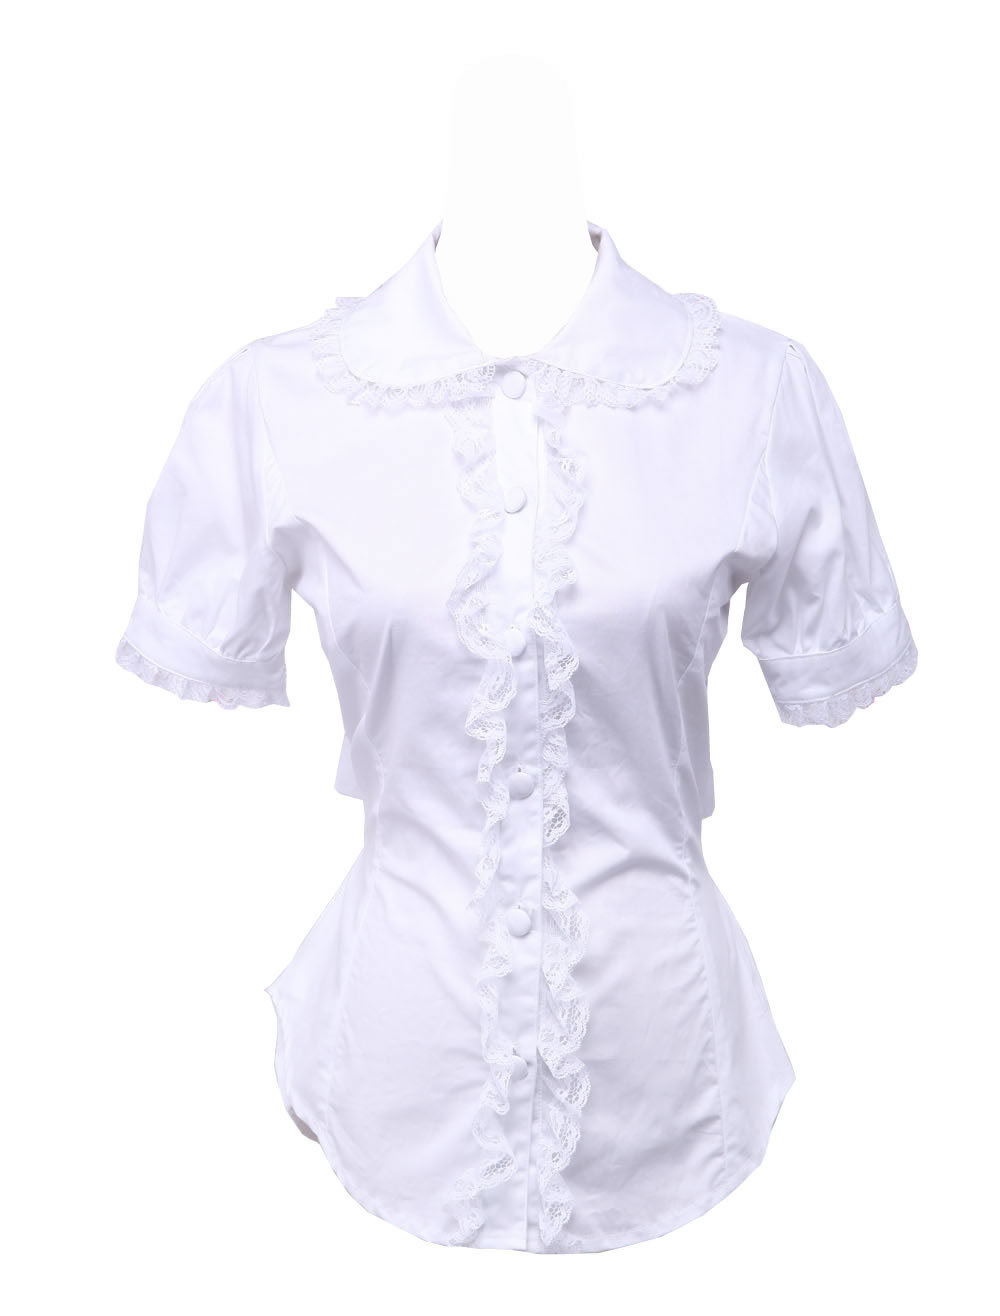 Primary image for White Cotton Lapel Lace Back Bow Retro Victorian Lolita Shirt Blouse